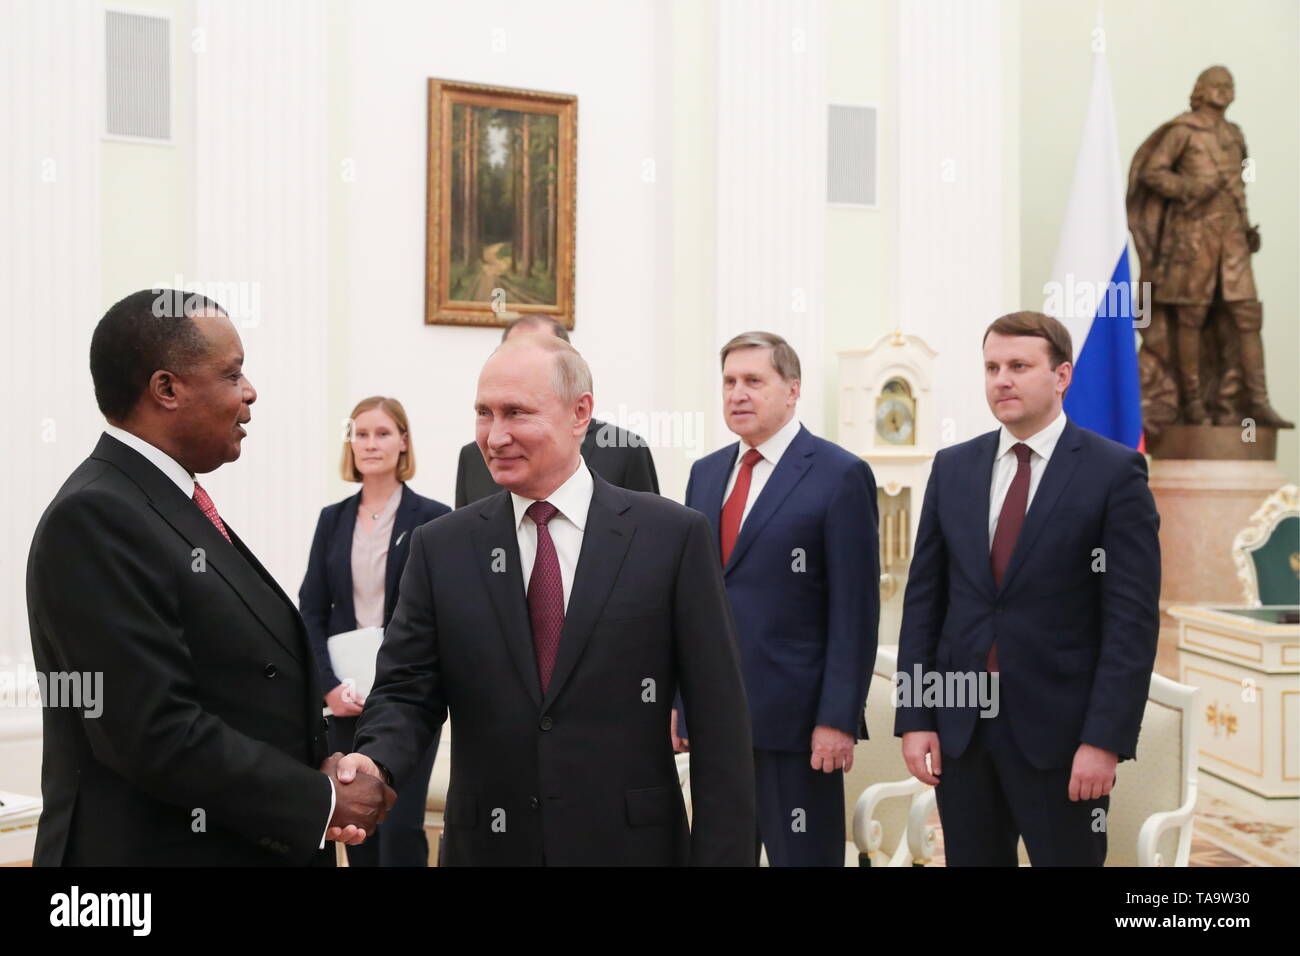 Moscow, Russia. 23rd May, 2019. MOSCOW, RUSSIA - MAY 23, 2019: President of Republic of the Congo, Denis Sassou Nguesso and Russia's President Vladimir Putin (L-R front) shake hands during a meeting at the Moscow Kremlin. Mikhail Klimentyev/Russian Presidential Press and Information Office/TASS Credit: ITAR-TASS News Agency/Alamy Live News - Stock Image